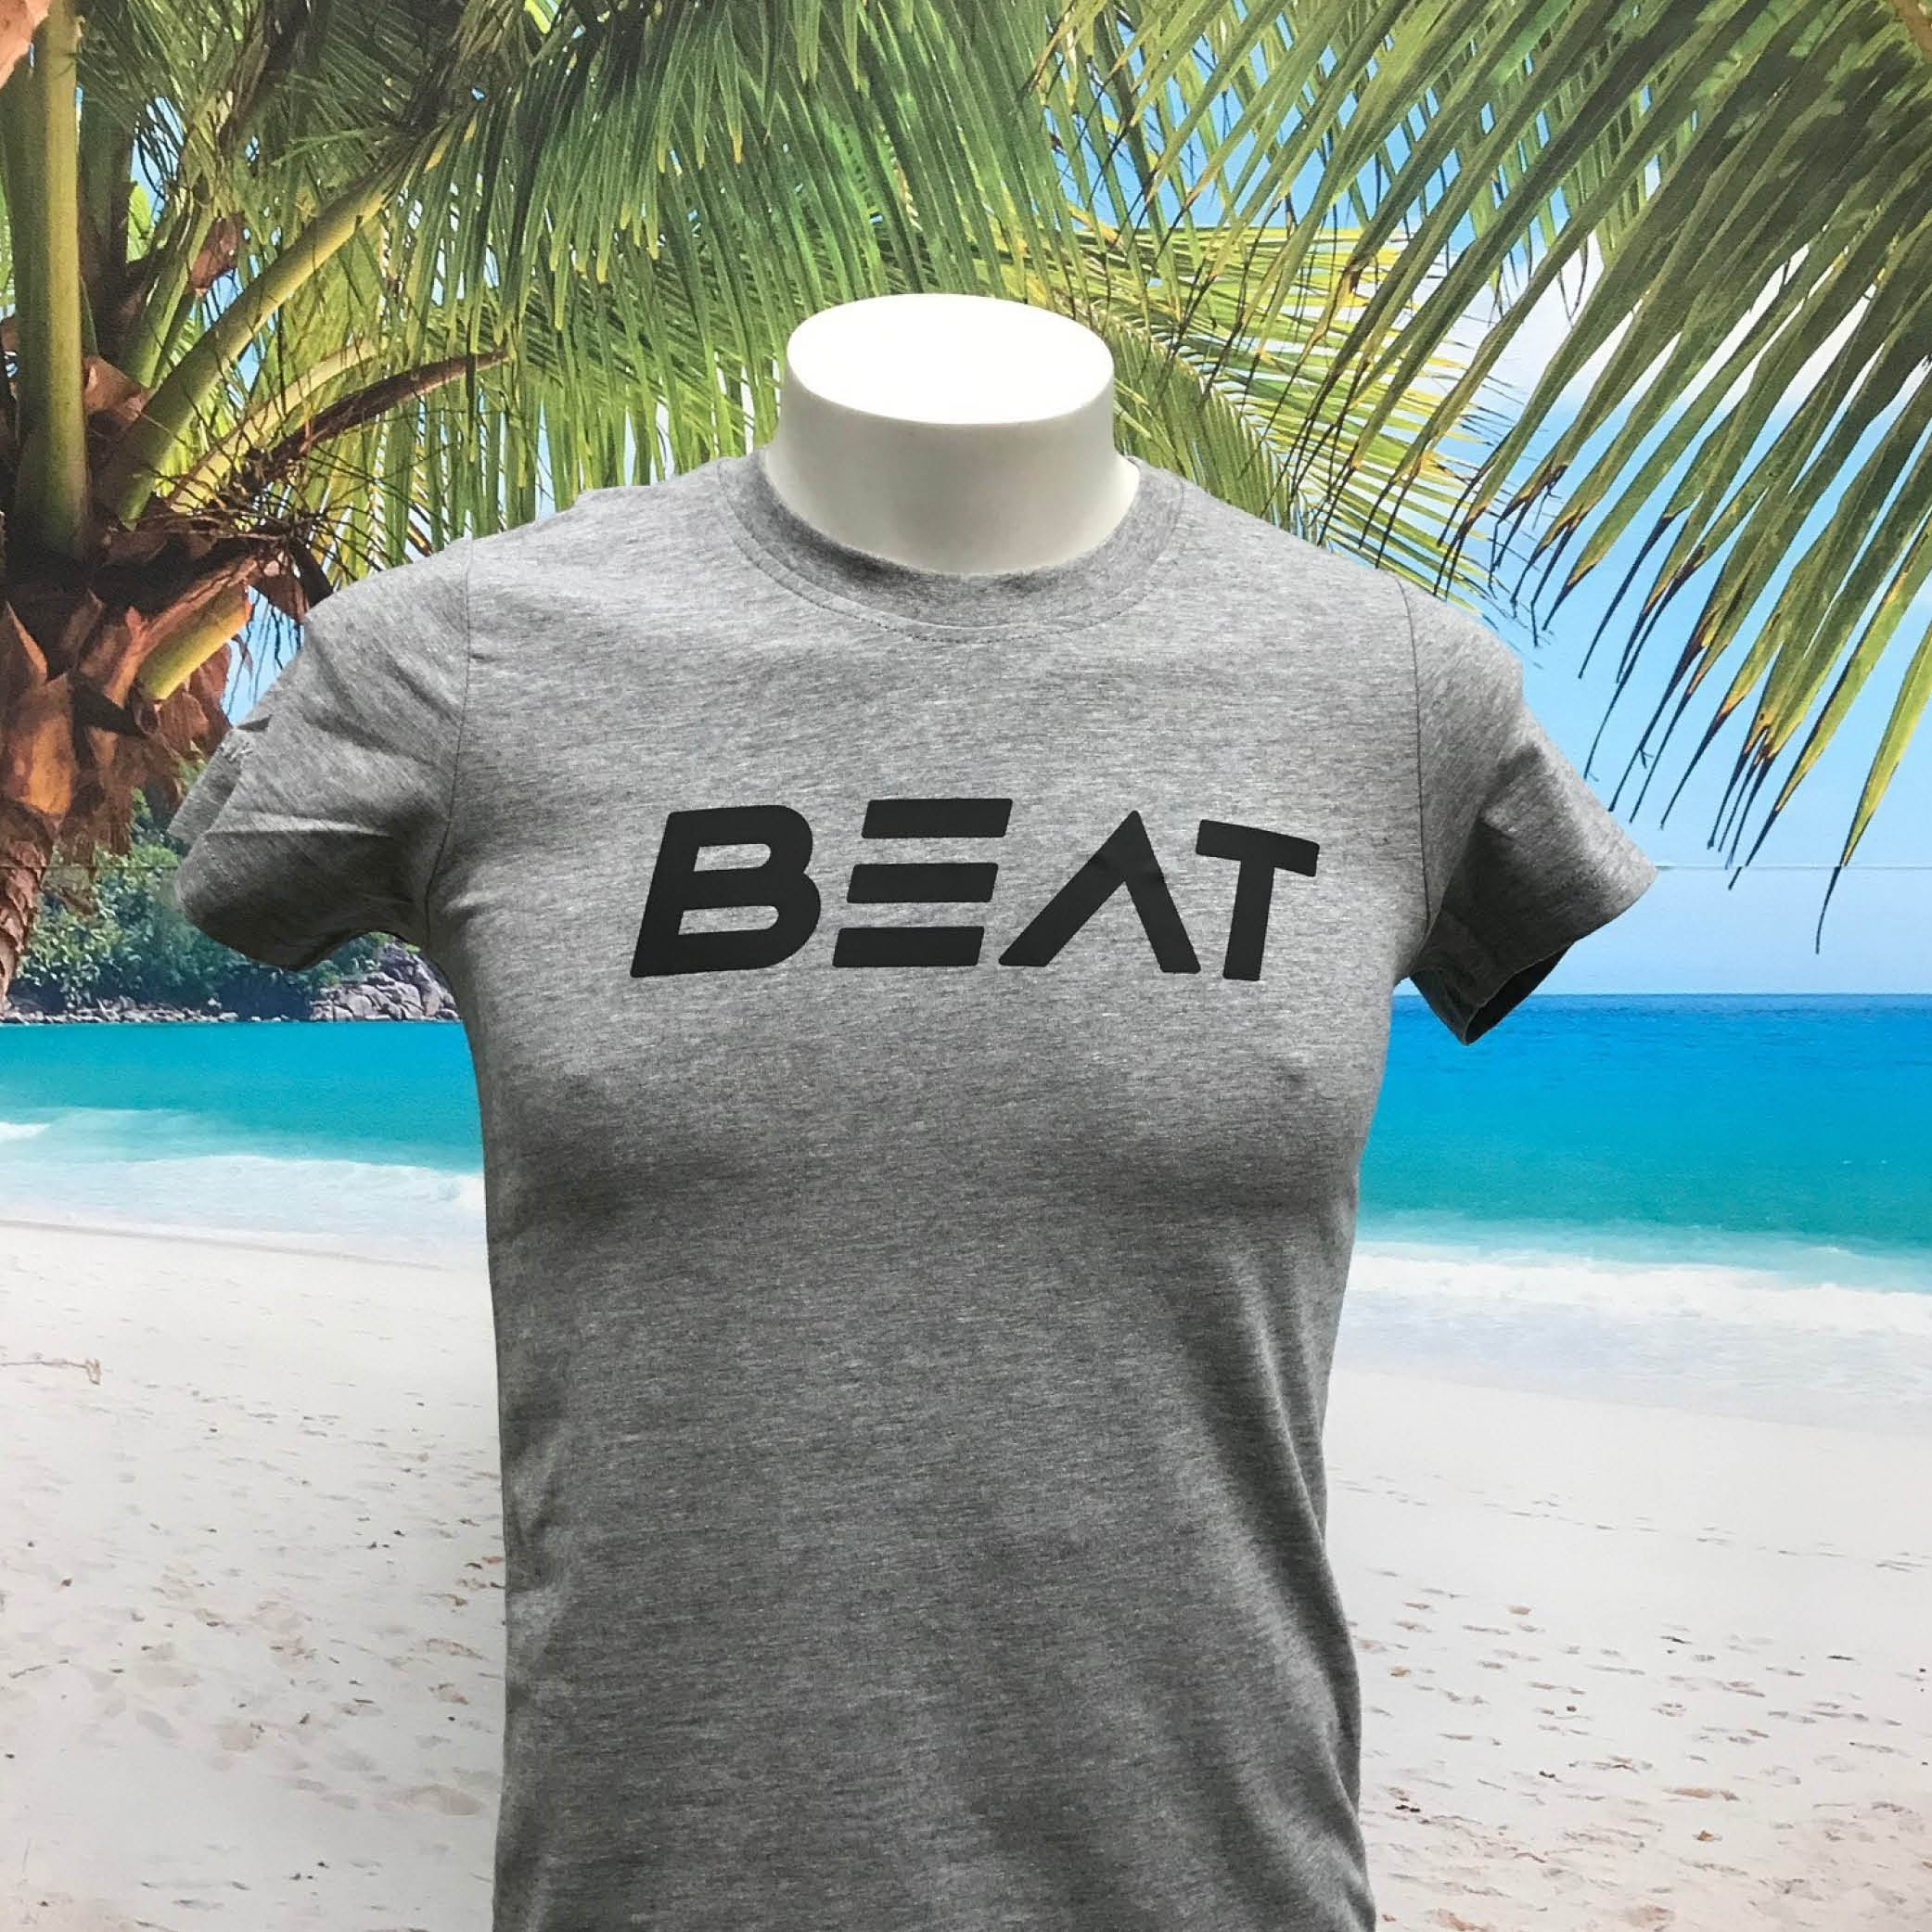 BEAT Cycling club tshirt2 door Decaprint 500x500px copy